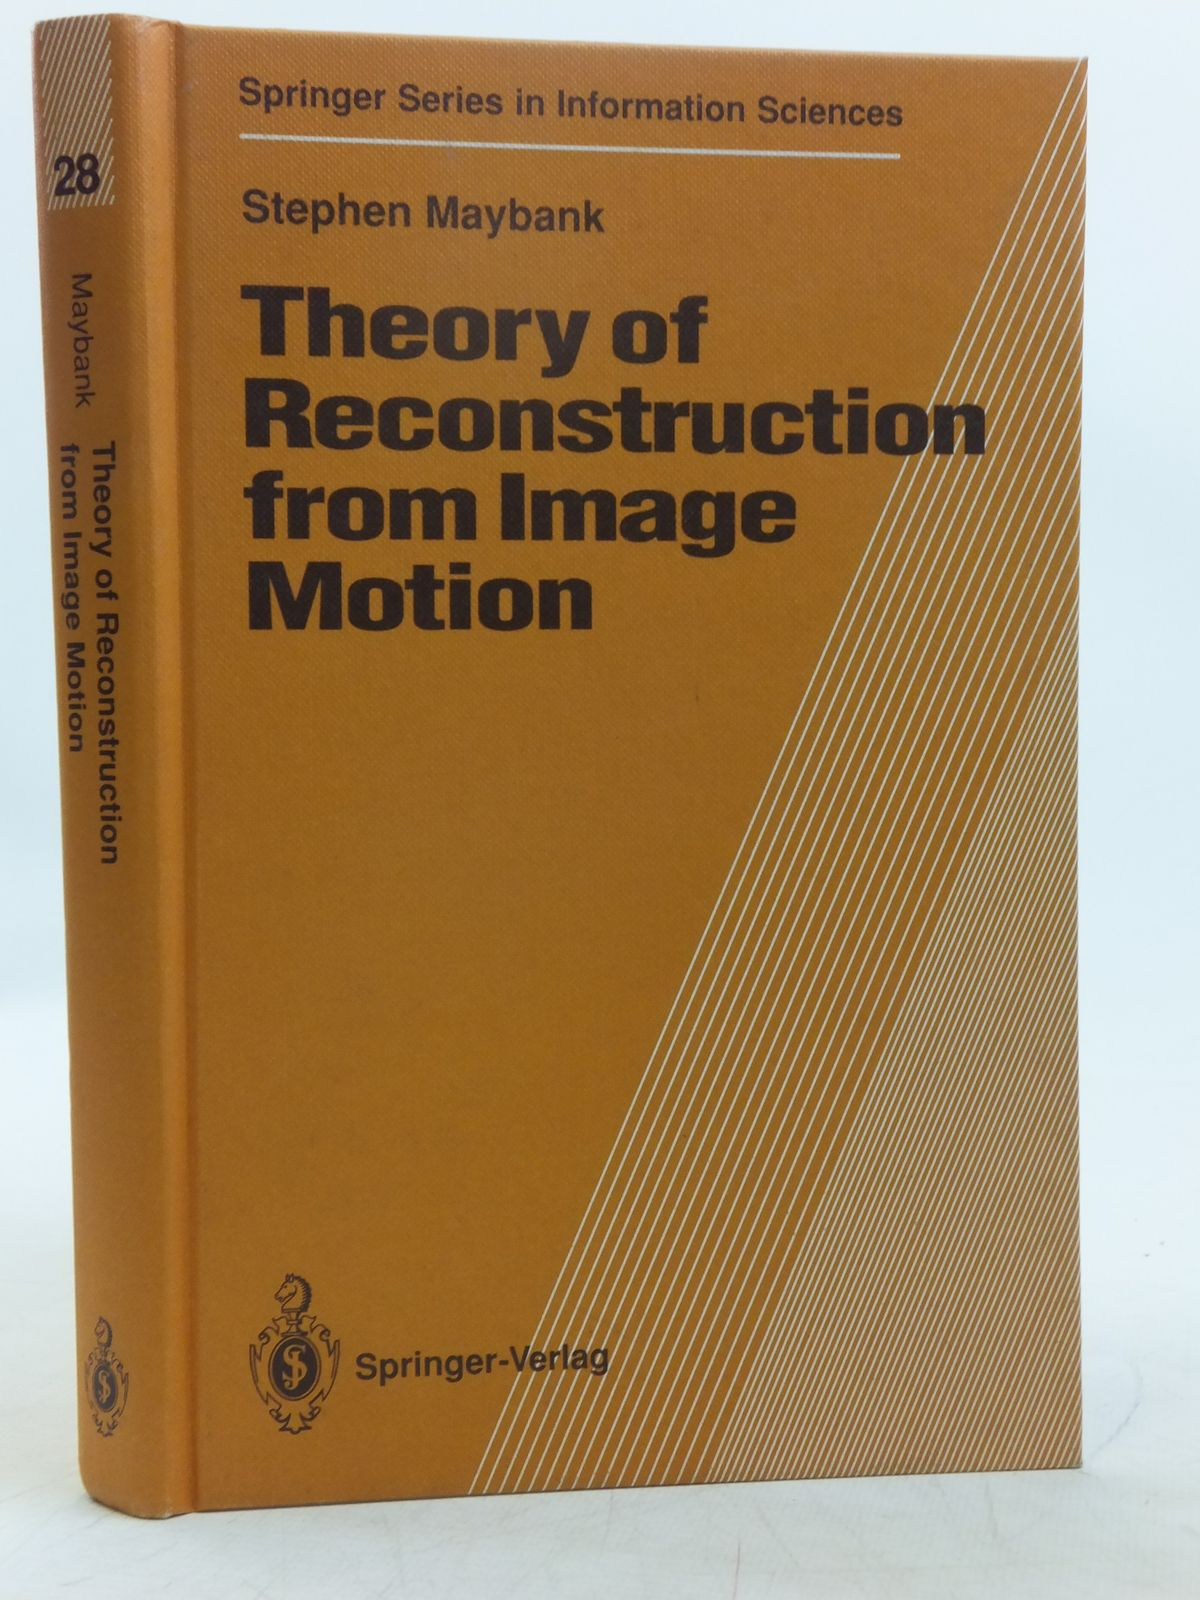 Theory of Reconstruction from Image Motion